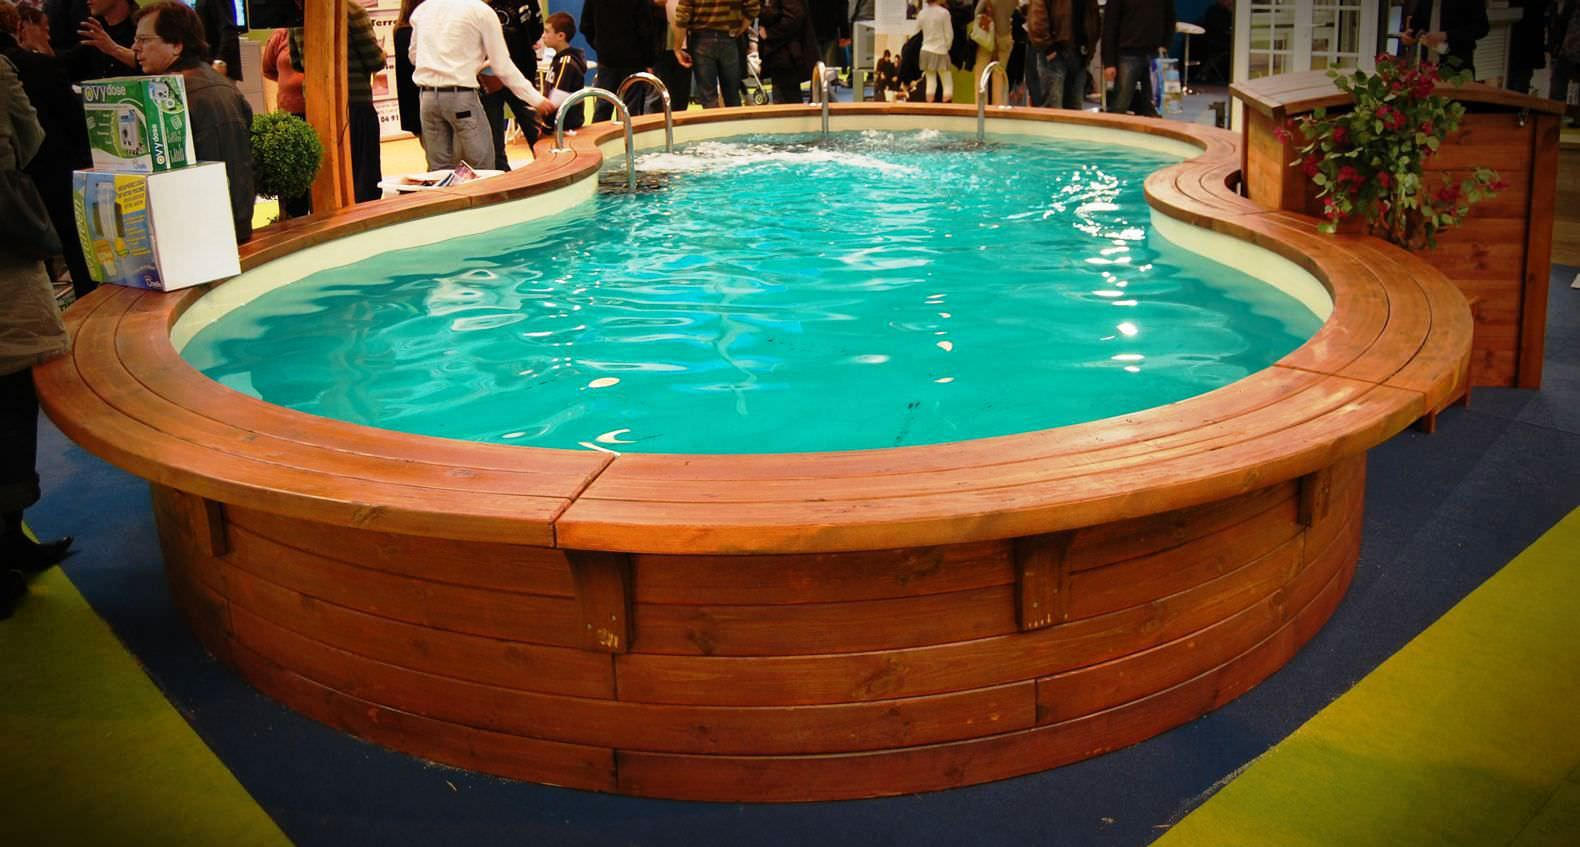 Wooden swimming pool coping - EcoCurves